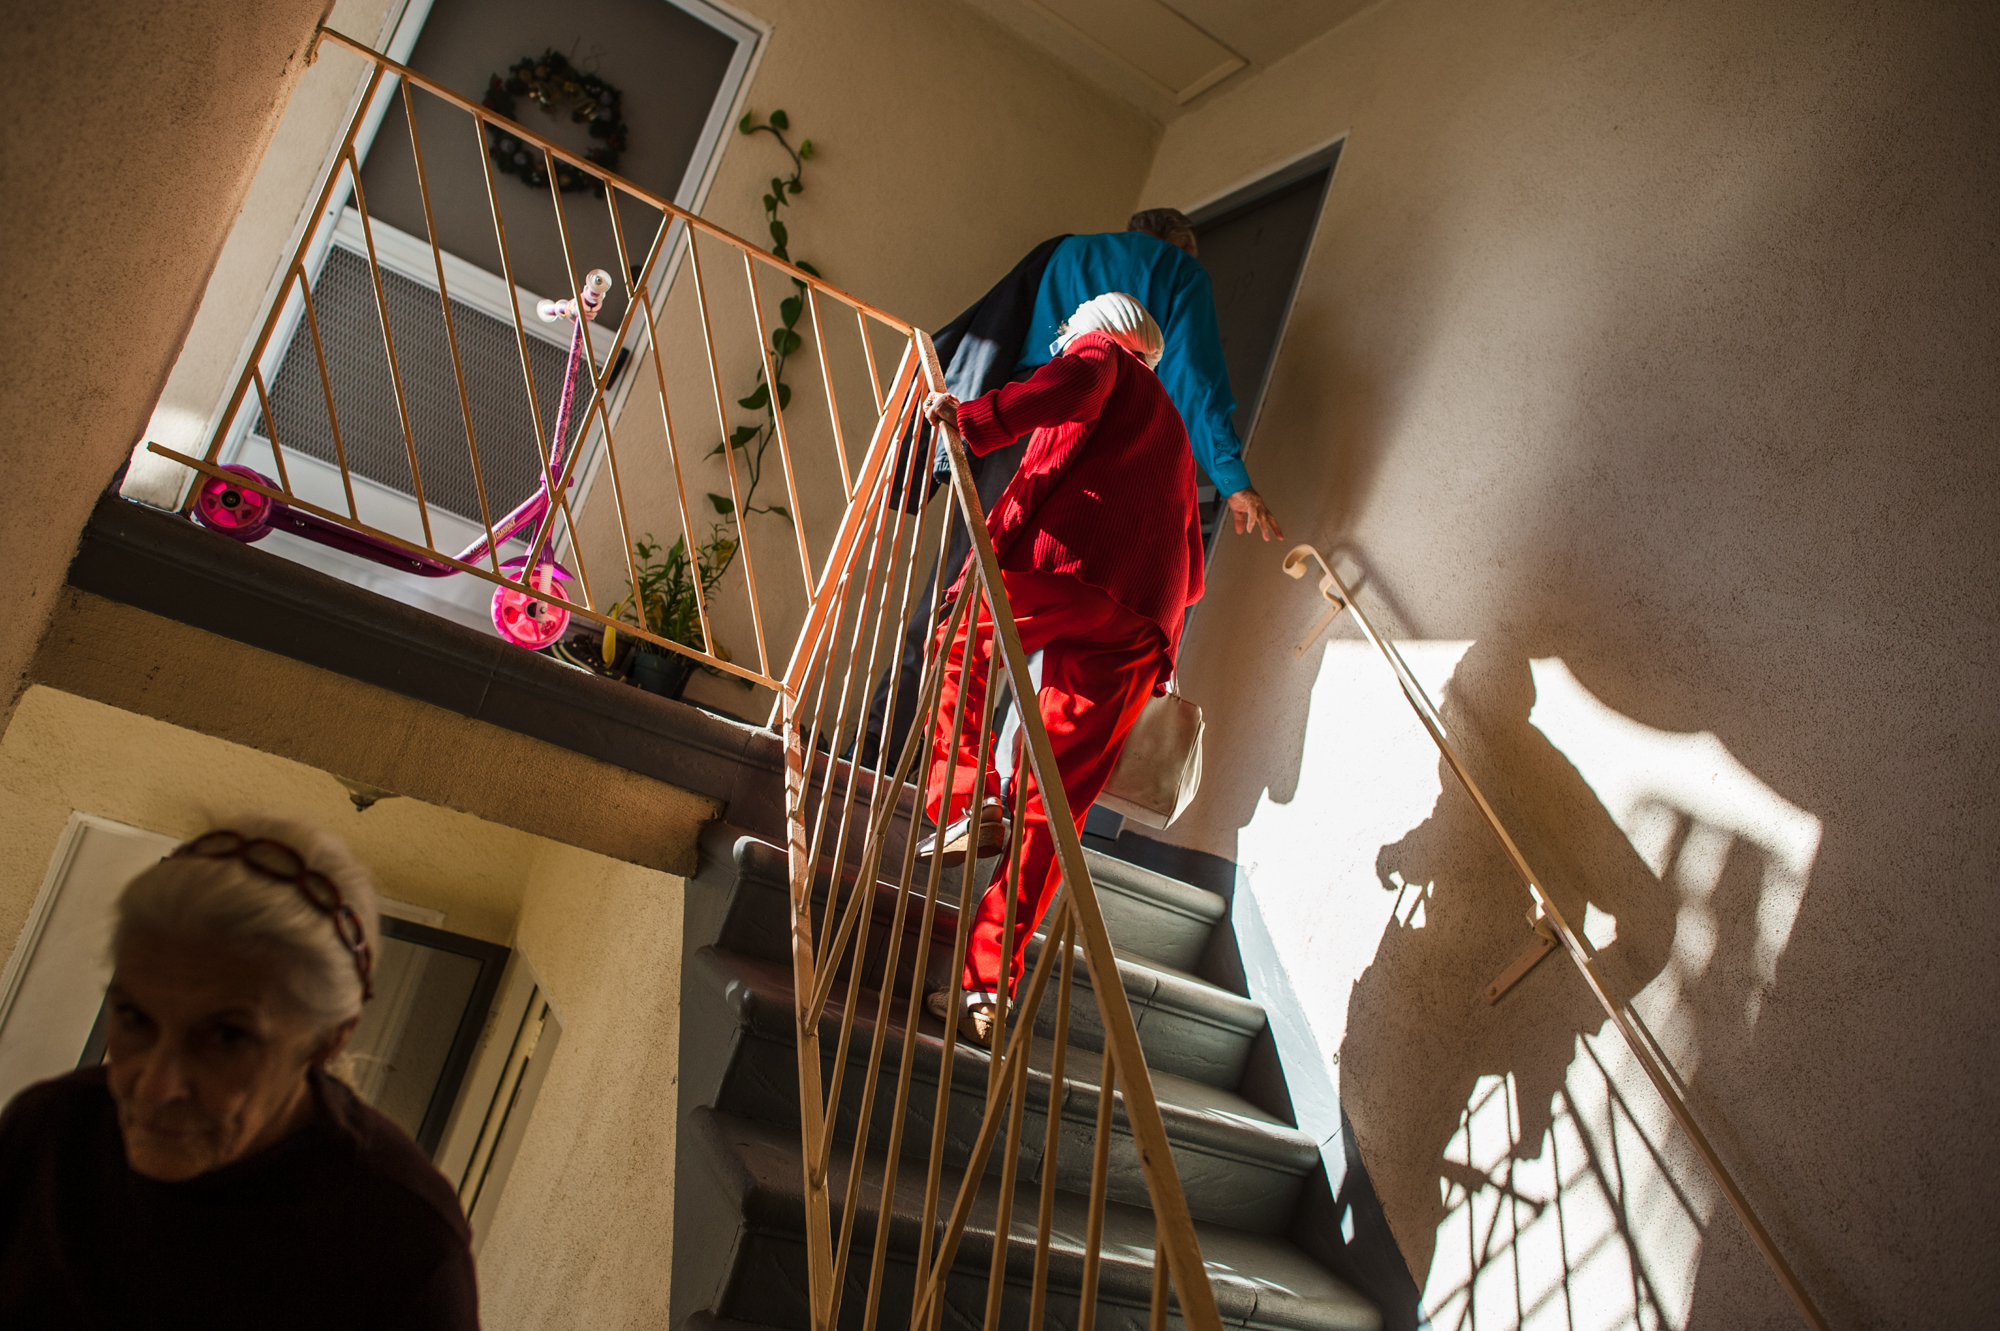 Adina, Will, and Jeanie climb a staircase to visit an apartment where they all may reside together.